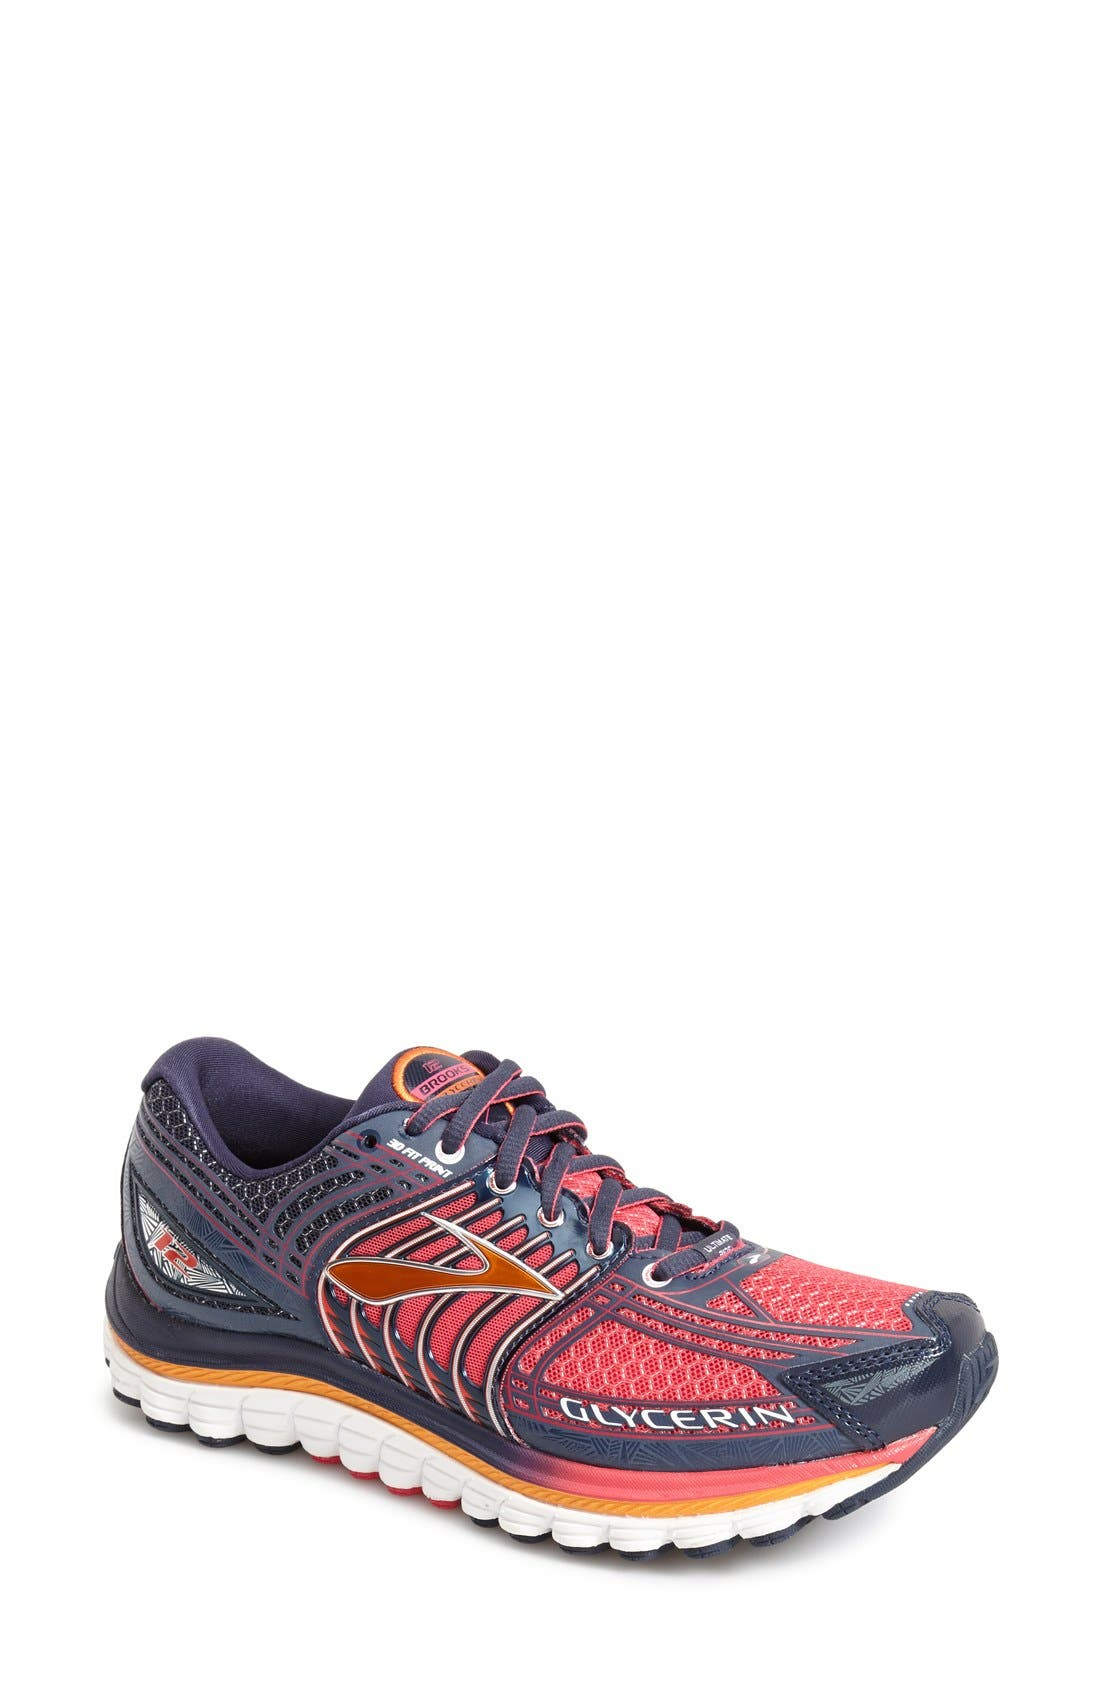 Main Image - Brooks 'Glycerin 12' Running Shoe (Women)